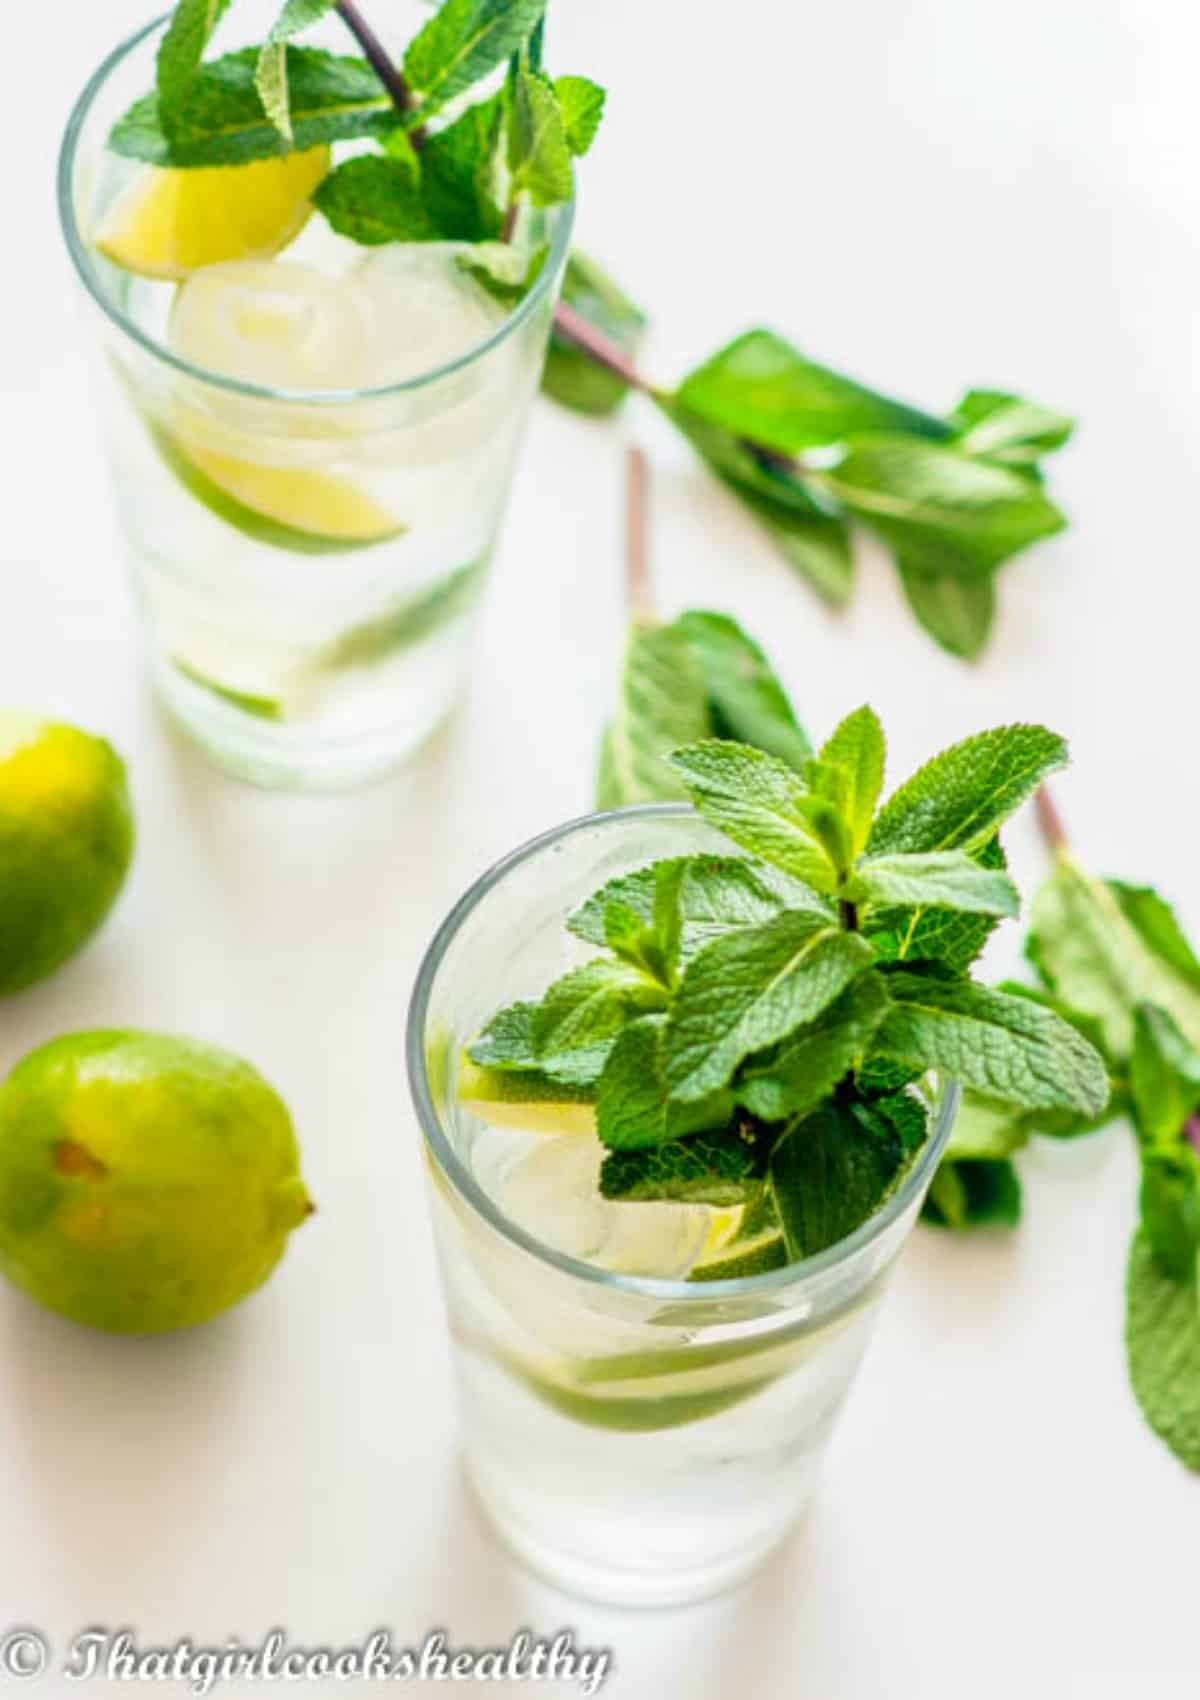 Lime drink with fresh limes